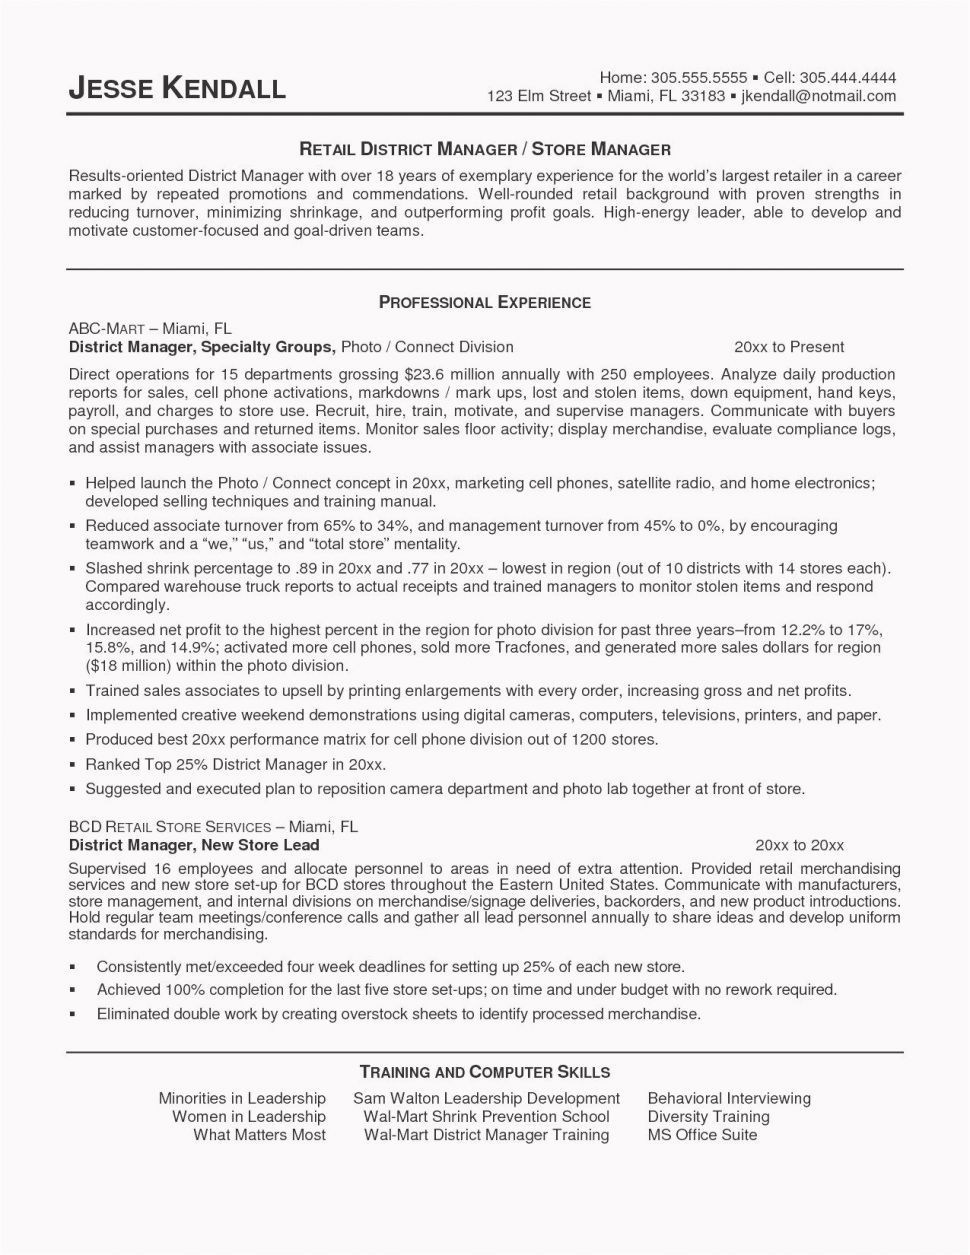 Warehouse Resume Templates 2019 Warehouse Resume Template